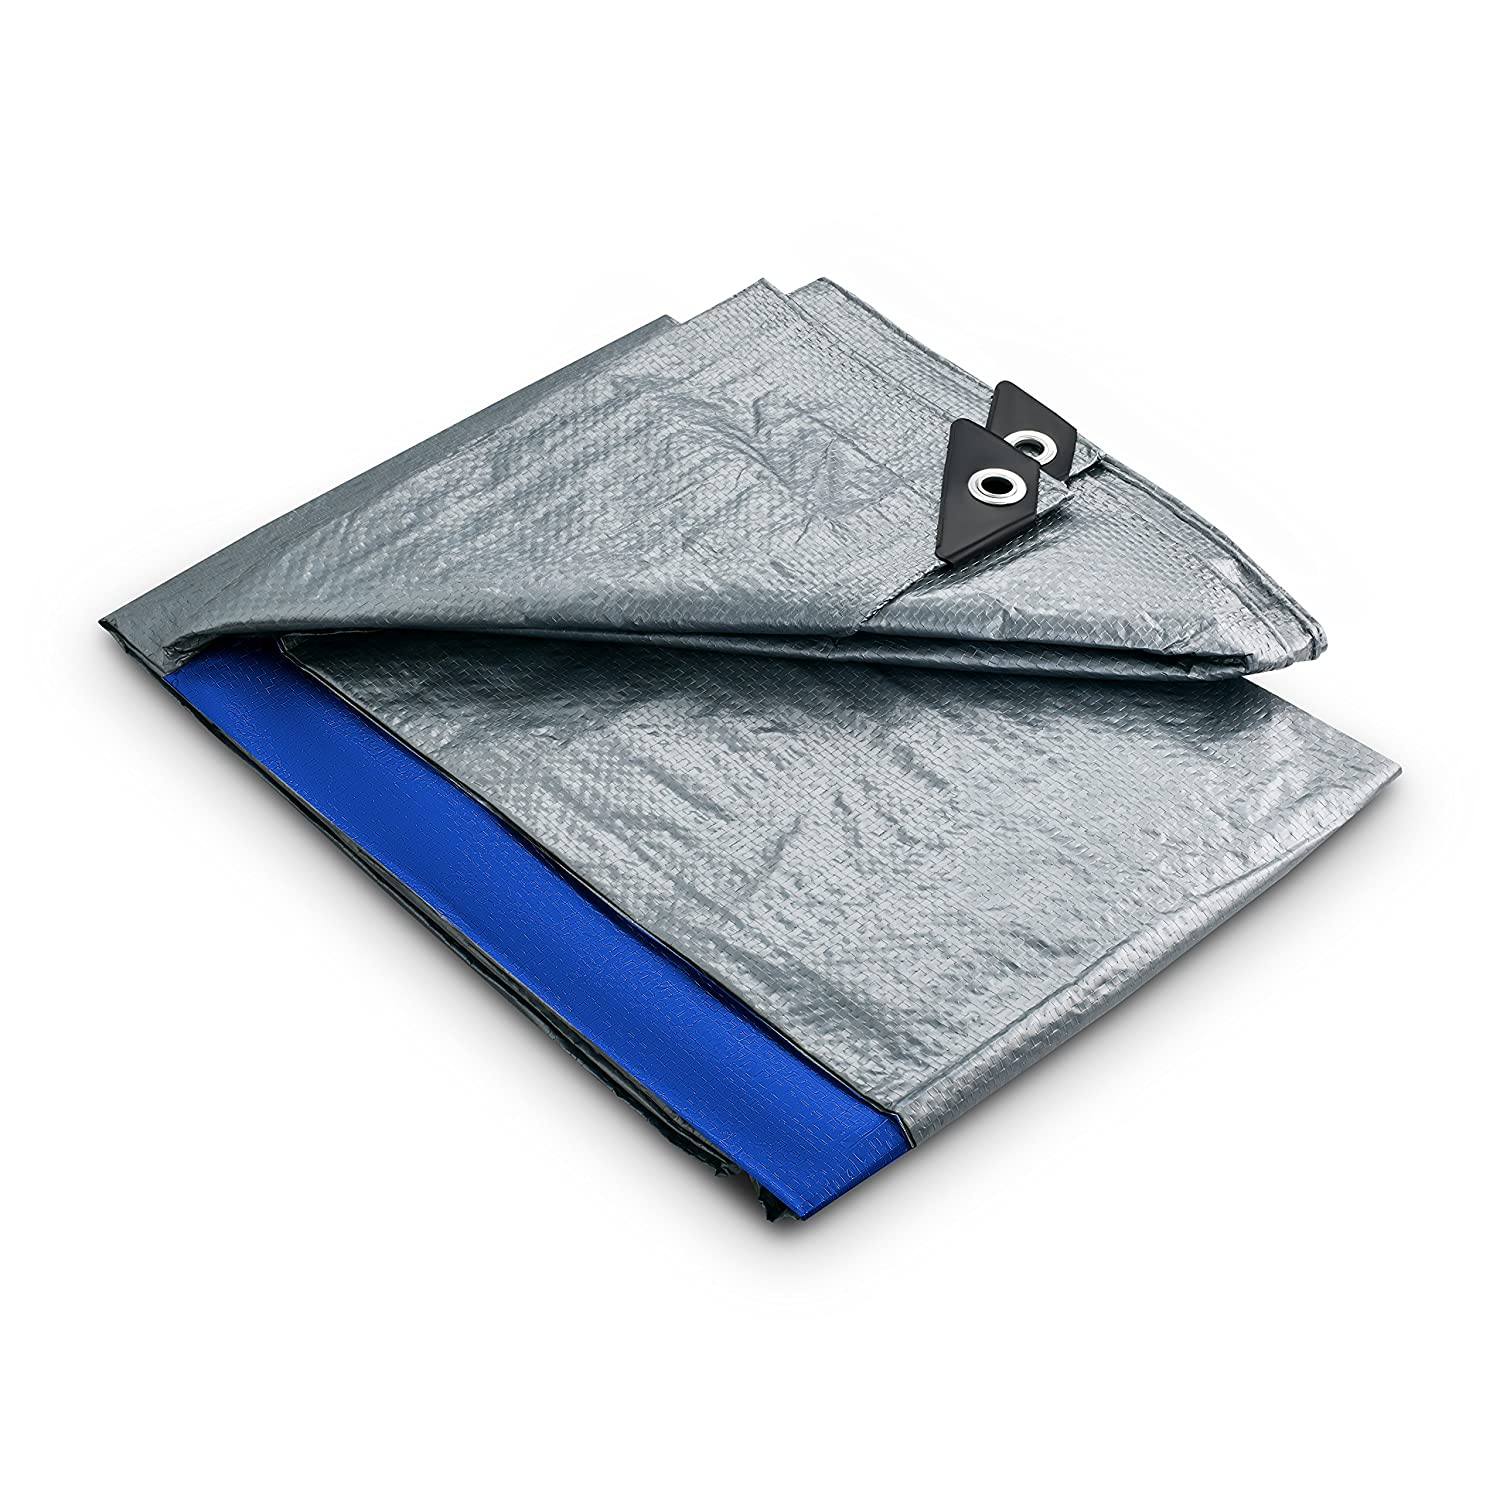 5.5 Mil Blue and Silver Emergency Rain Shelter 10x12 Waterproof Tarp KING-A-MA-JIGS 10 Foot. x 12 Foot Outdoor Cover and Camping Use 2 Pack All-Purpose Plastic Poly Tarp With Metal Grommets